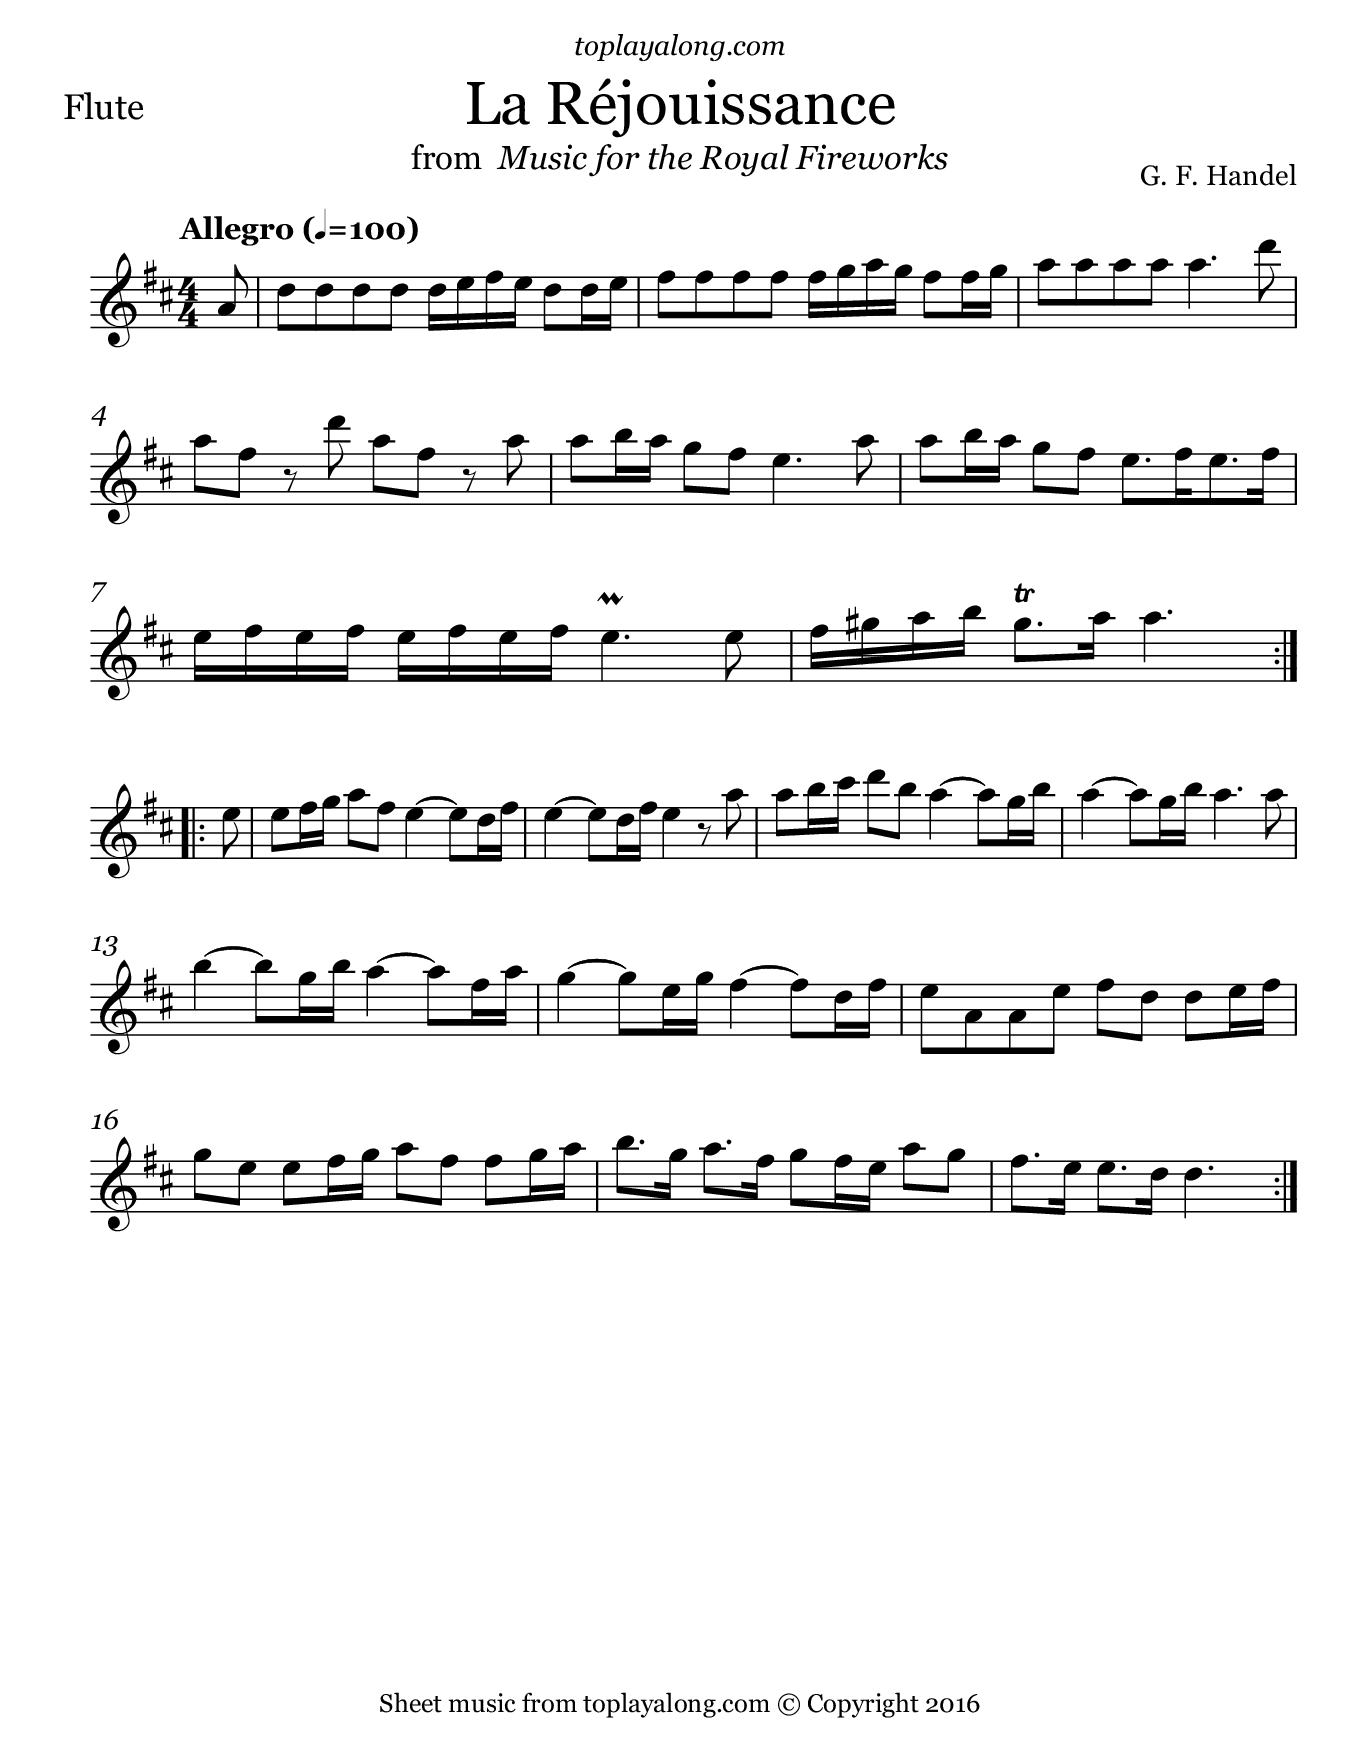 La Réjouissance from Royal Fireworks by Handel. Sheet music for Flute, page 1.